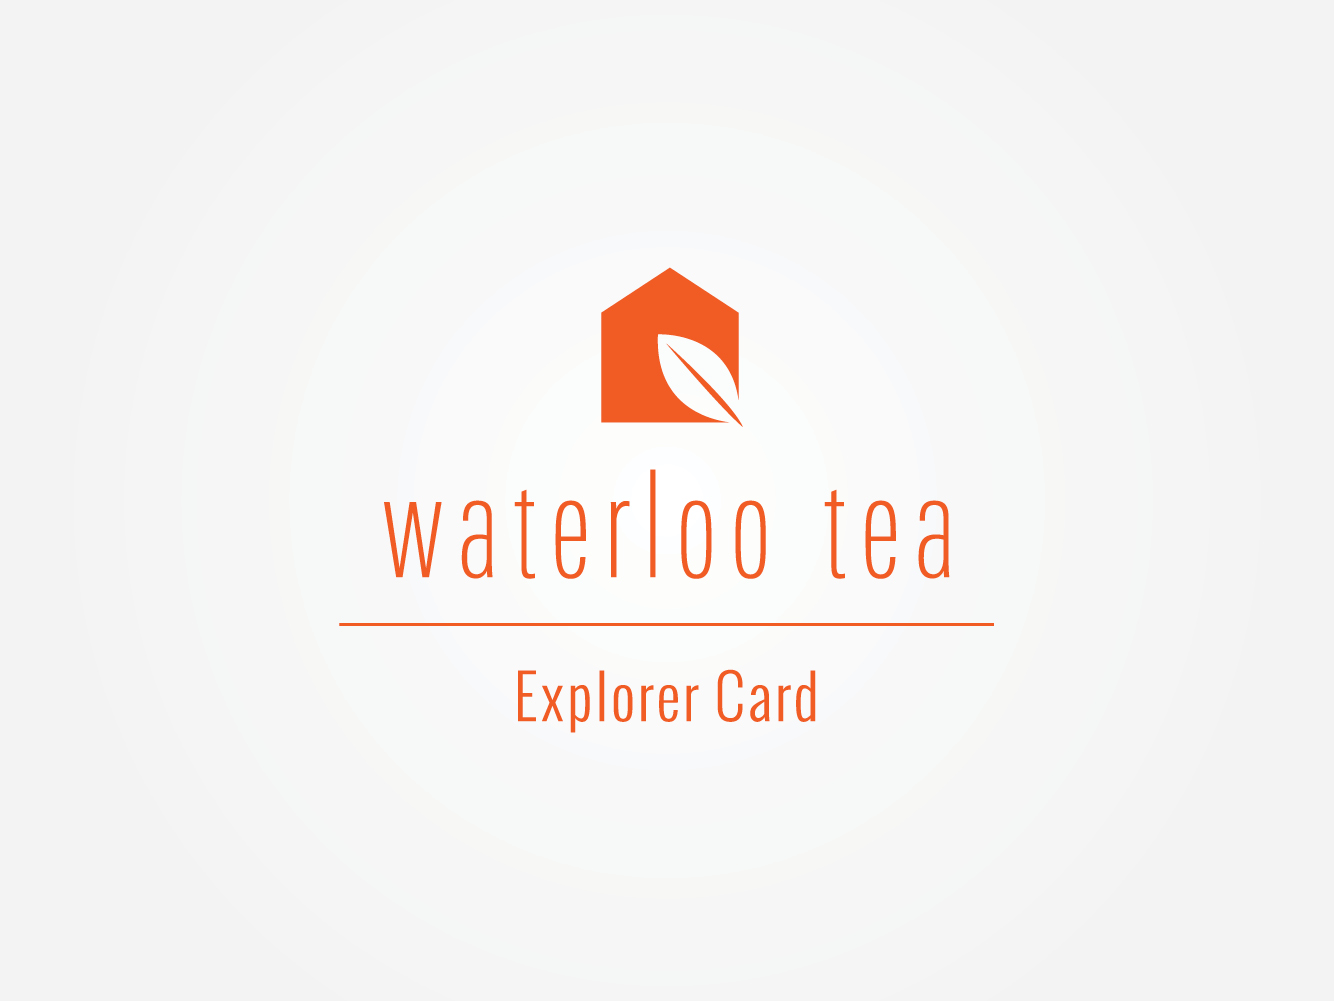 Waterloo Tea Cardiff upscale cafe loyalty card design